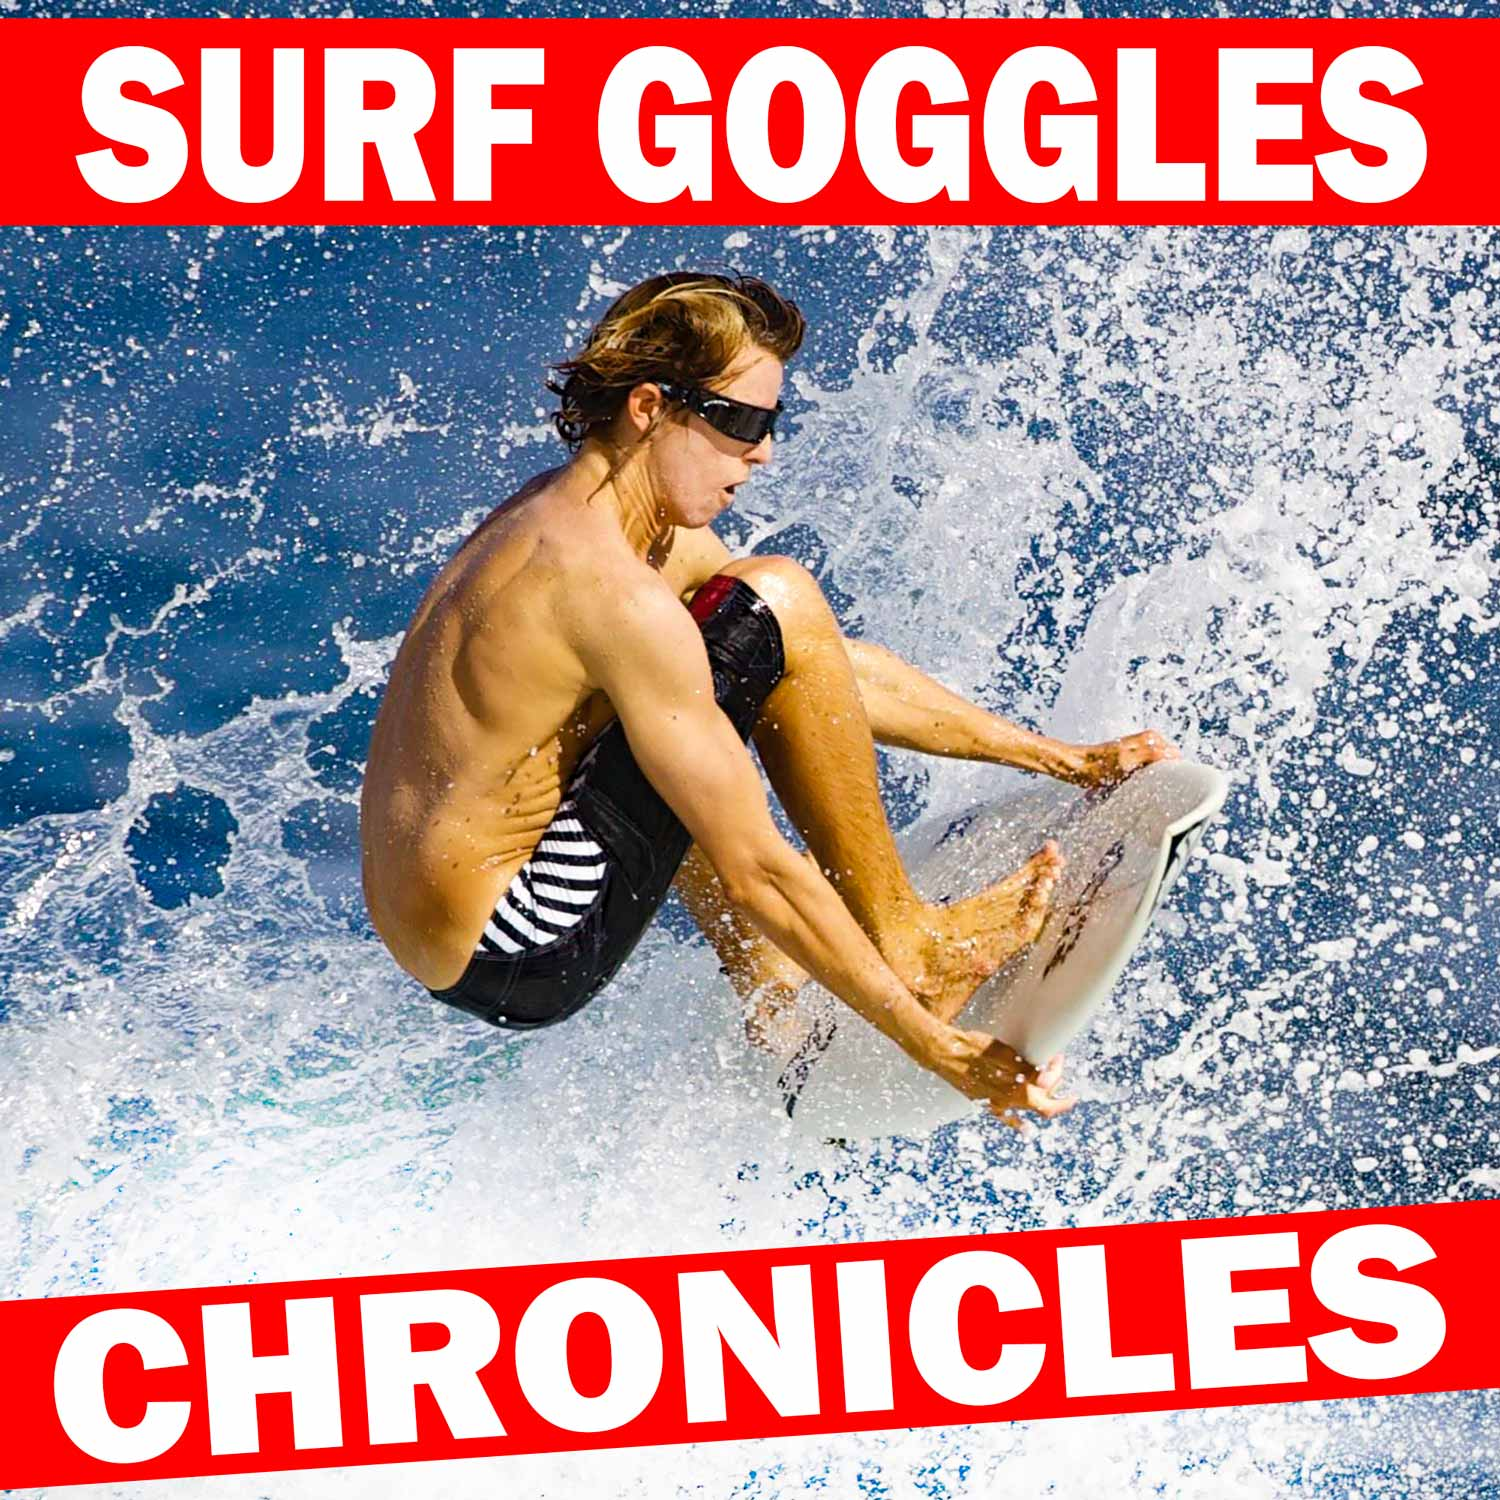 From Concept to Market A-Z: Patents,  Trademarks, Manufacturing, Sourcing,  Marketing, Branding, E-Commerce - Surf Goggle Chronicles show art